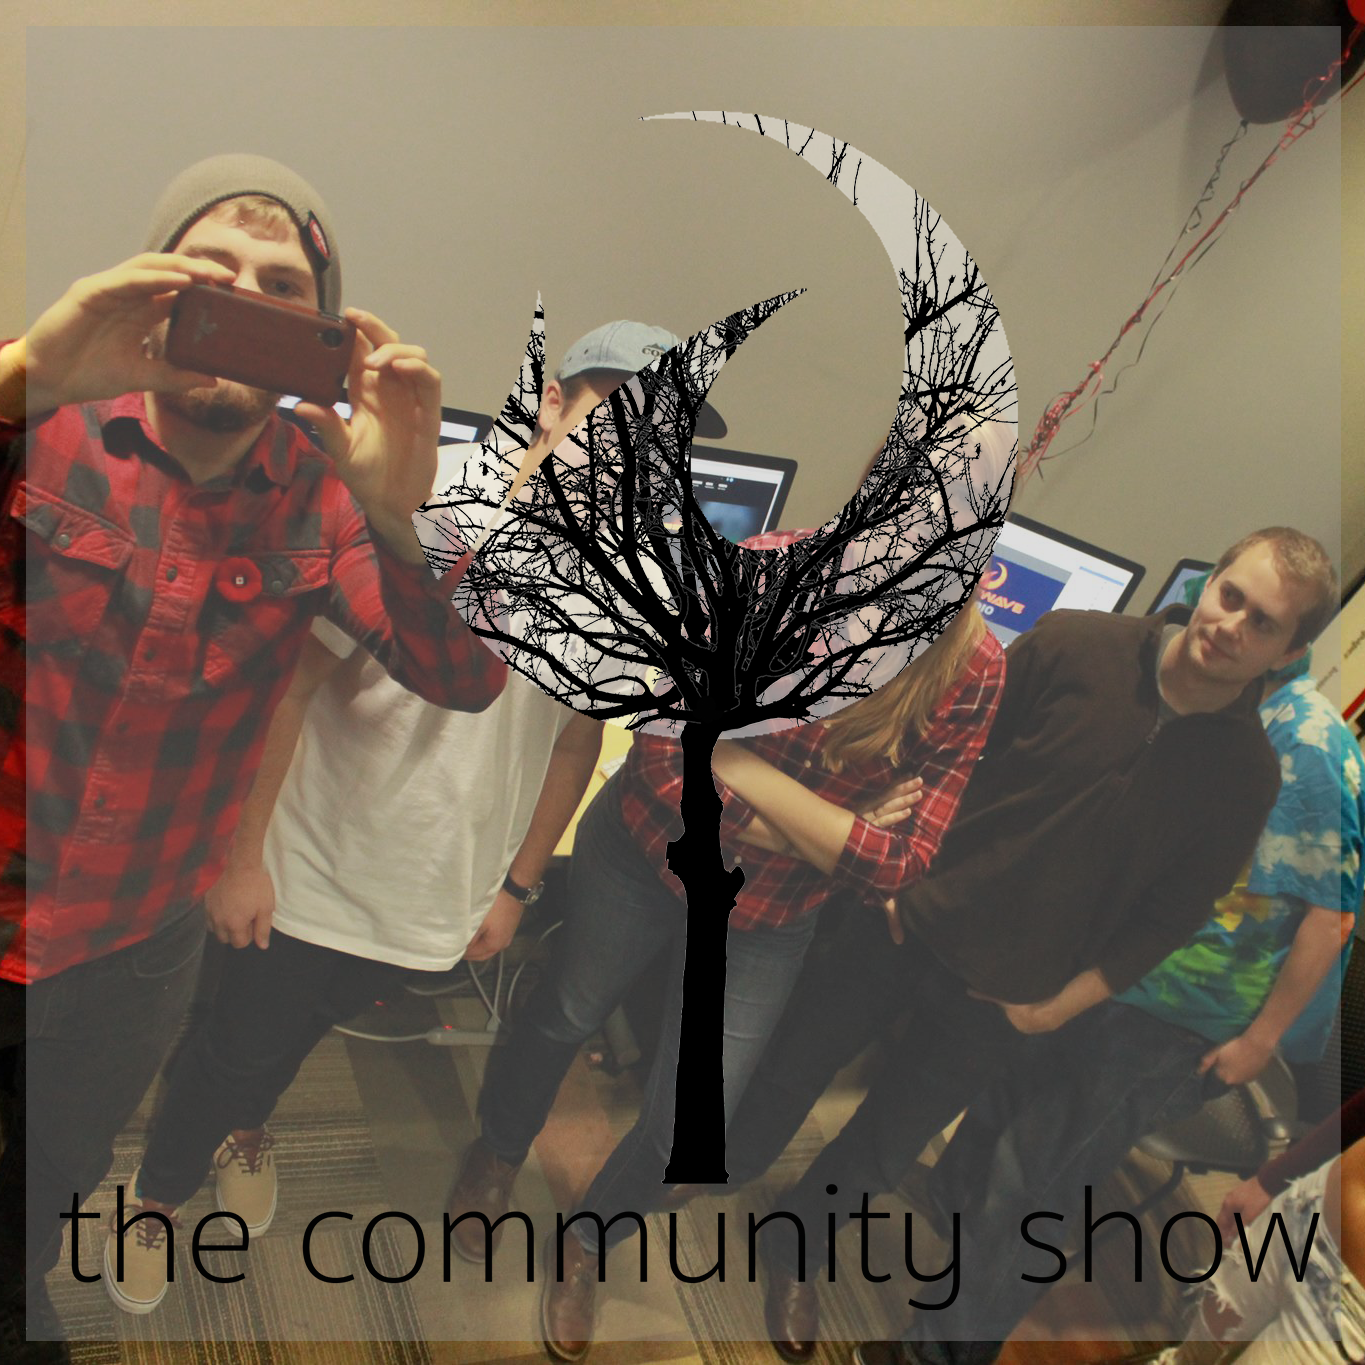 The Community Show - Come join our Kelowna community! The place for local music and events.